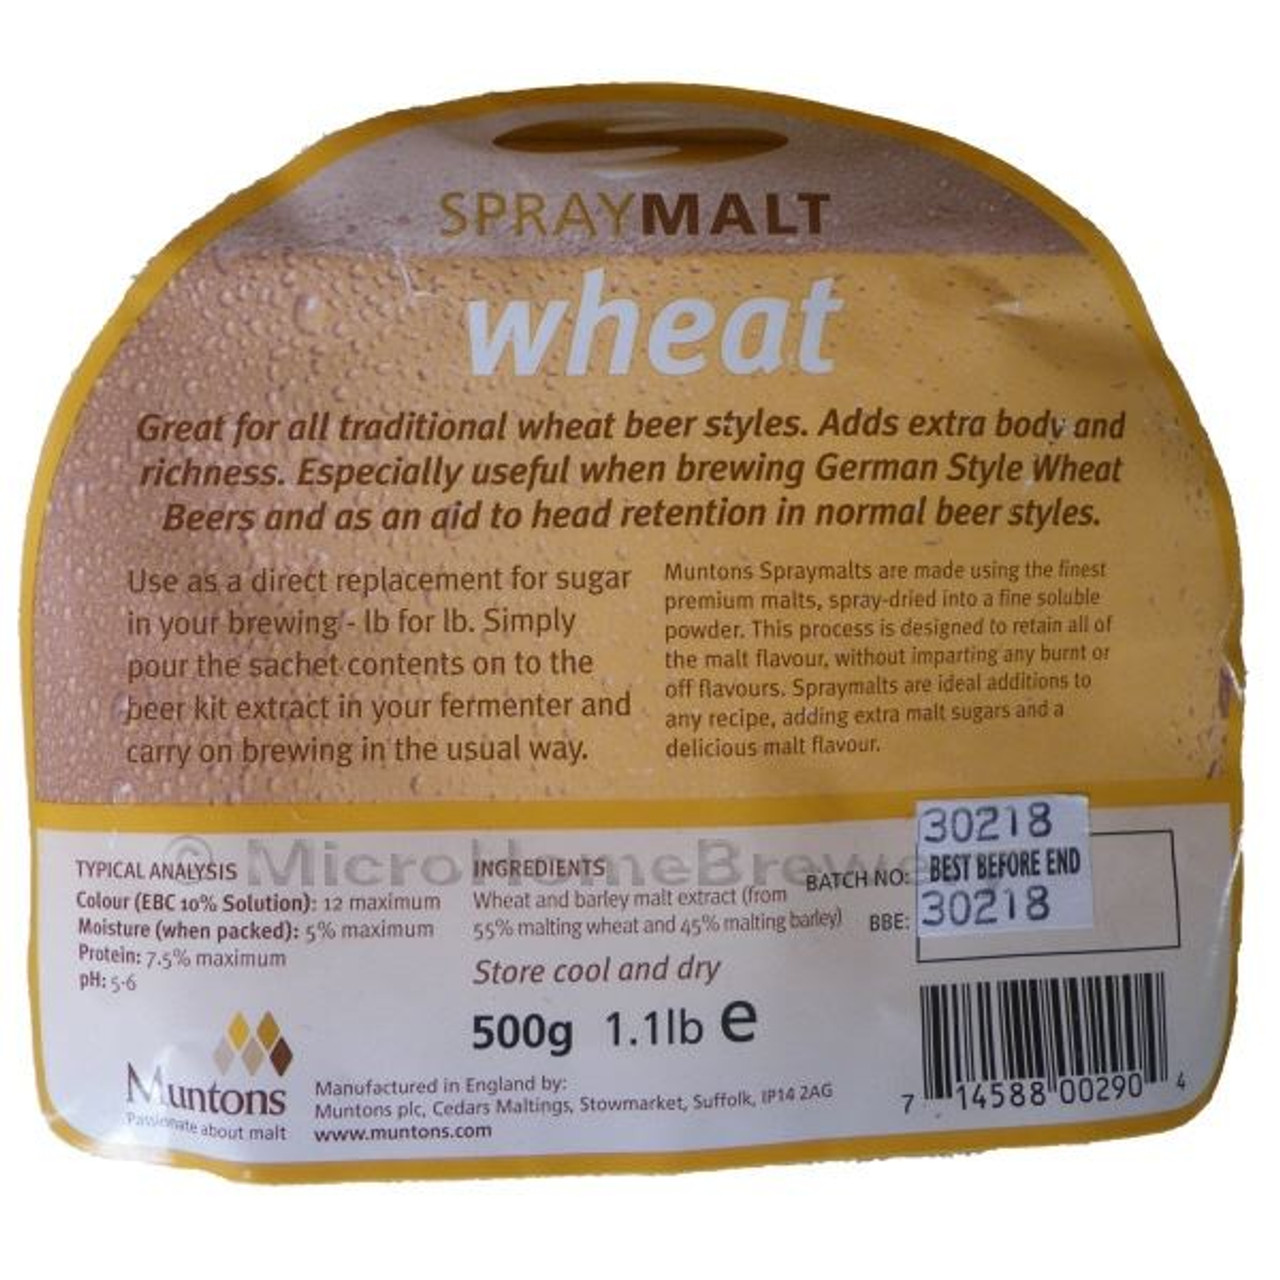 Muntons Spraymalt WHEAT 500g 100% Malt Extract Home Brew Beer Improver